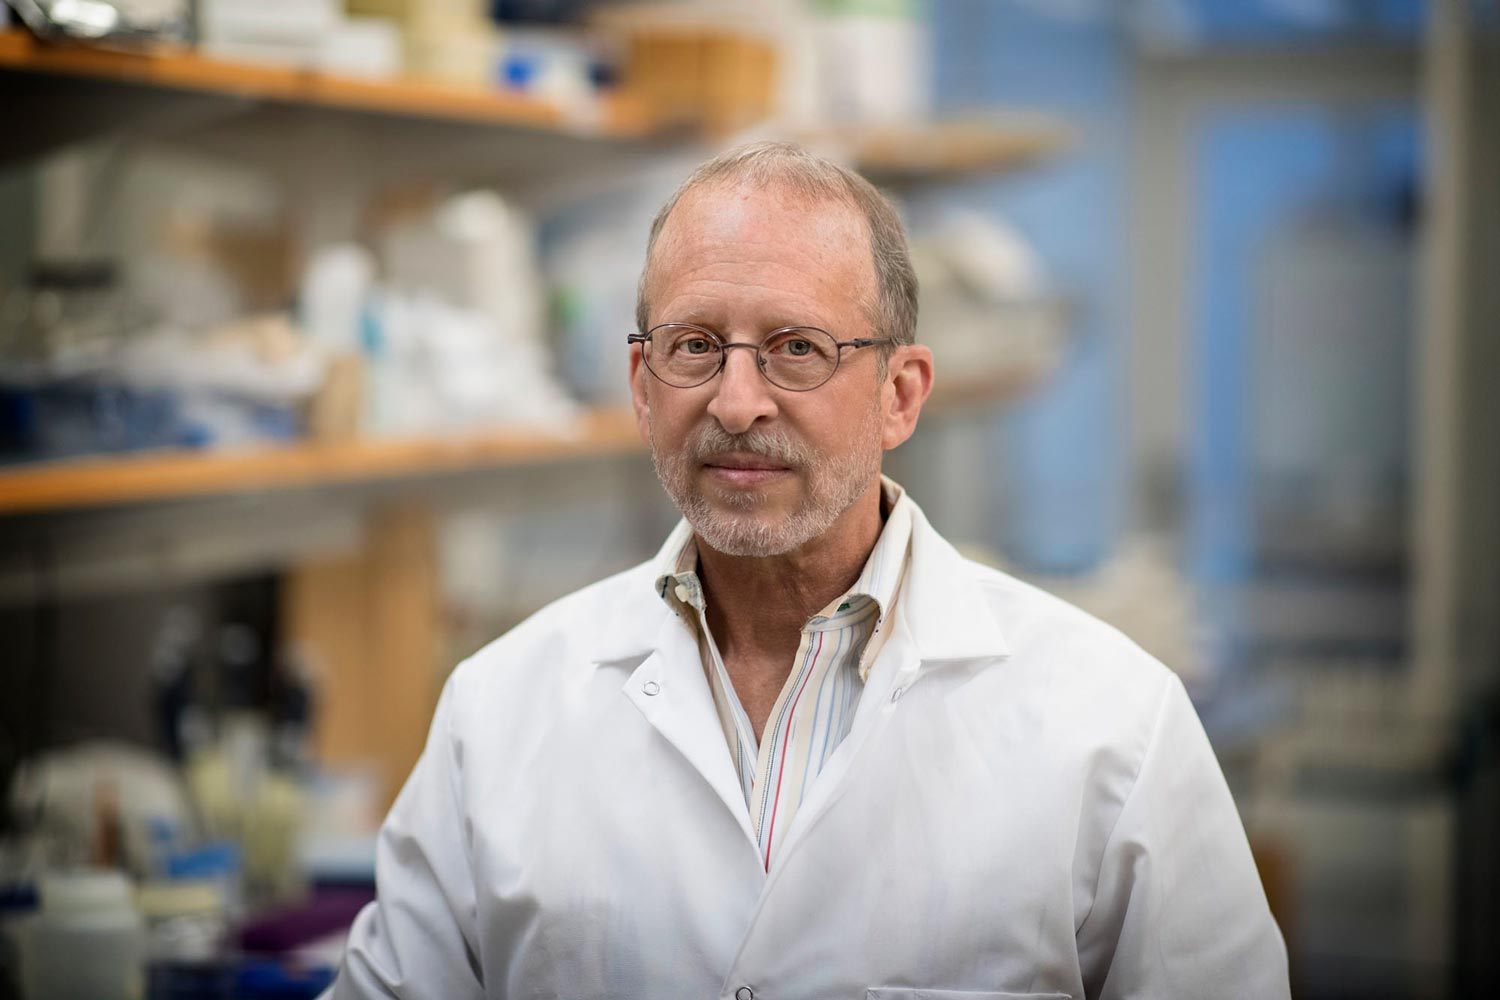 George Bloom's lab specializes in understanding the biochemical changes that lead to Alzheimer's disease.